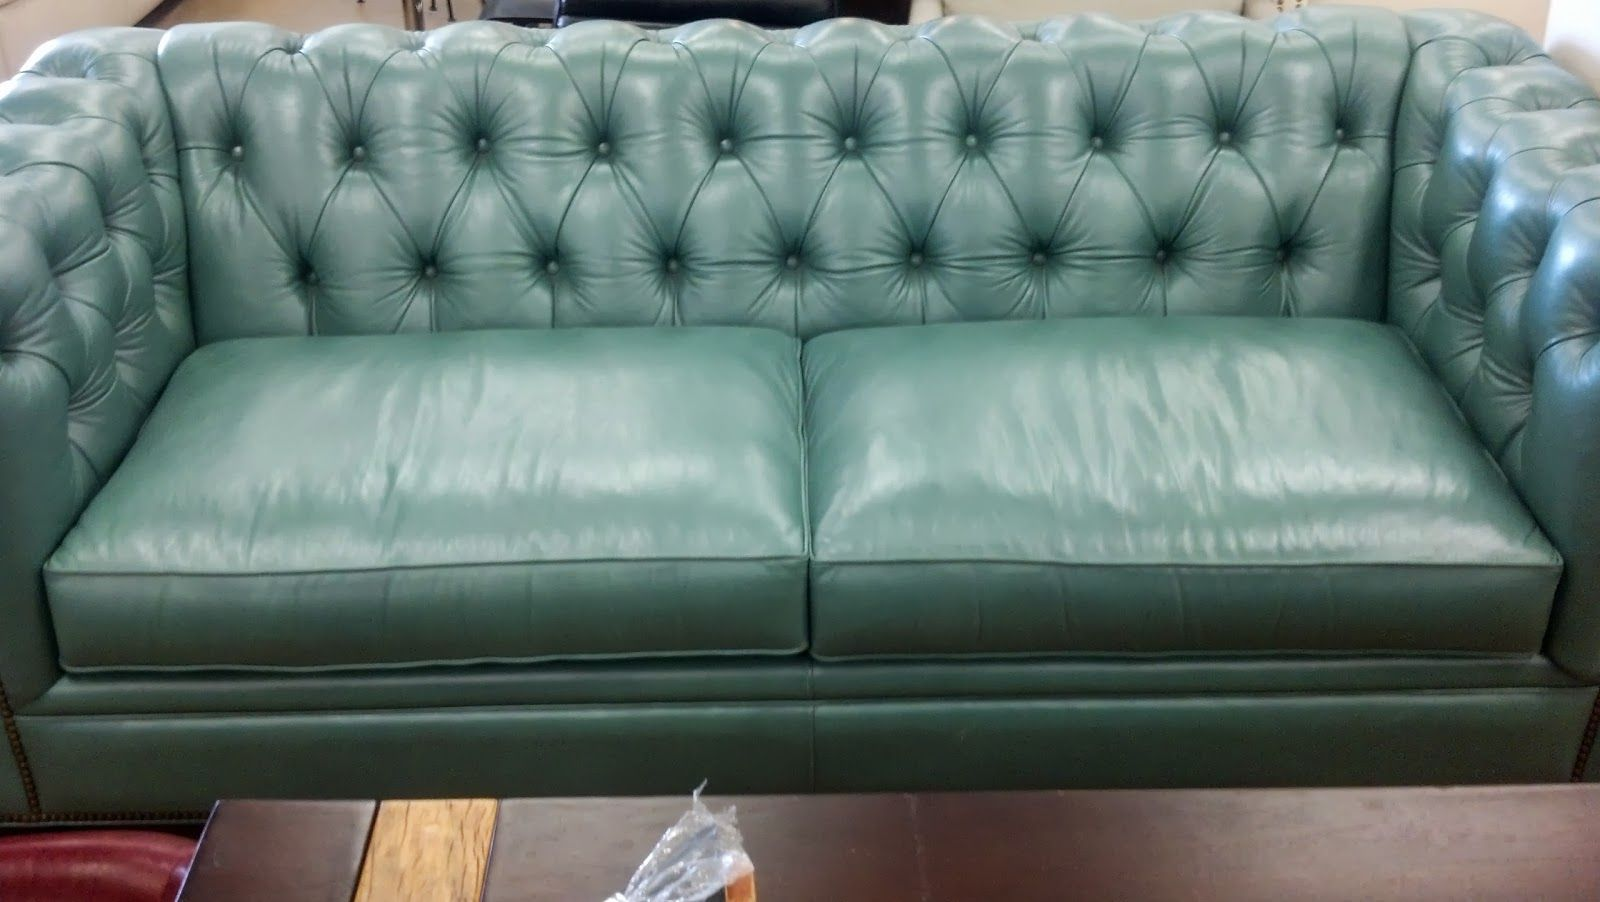 The Burban Cookie Tufted Aqua Leather Chesterfield Sofa Houston High Fashion Home 1 7k